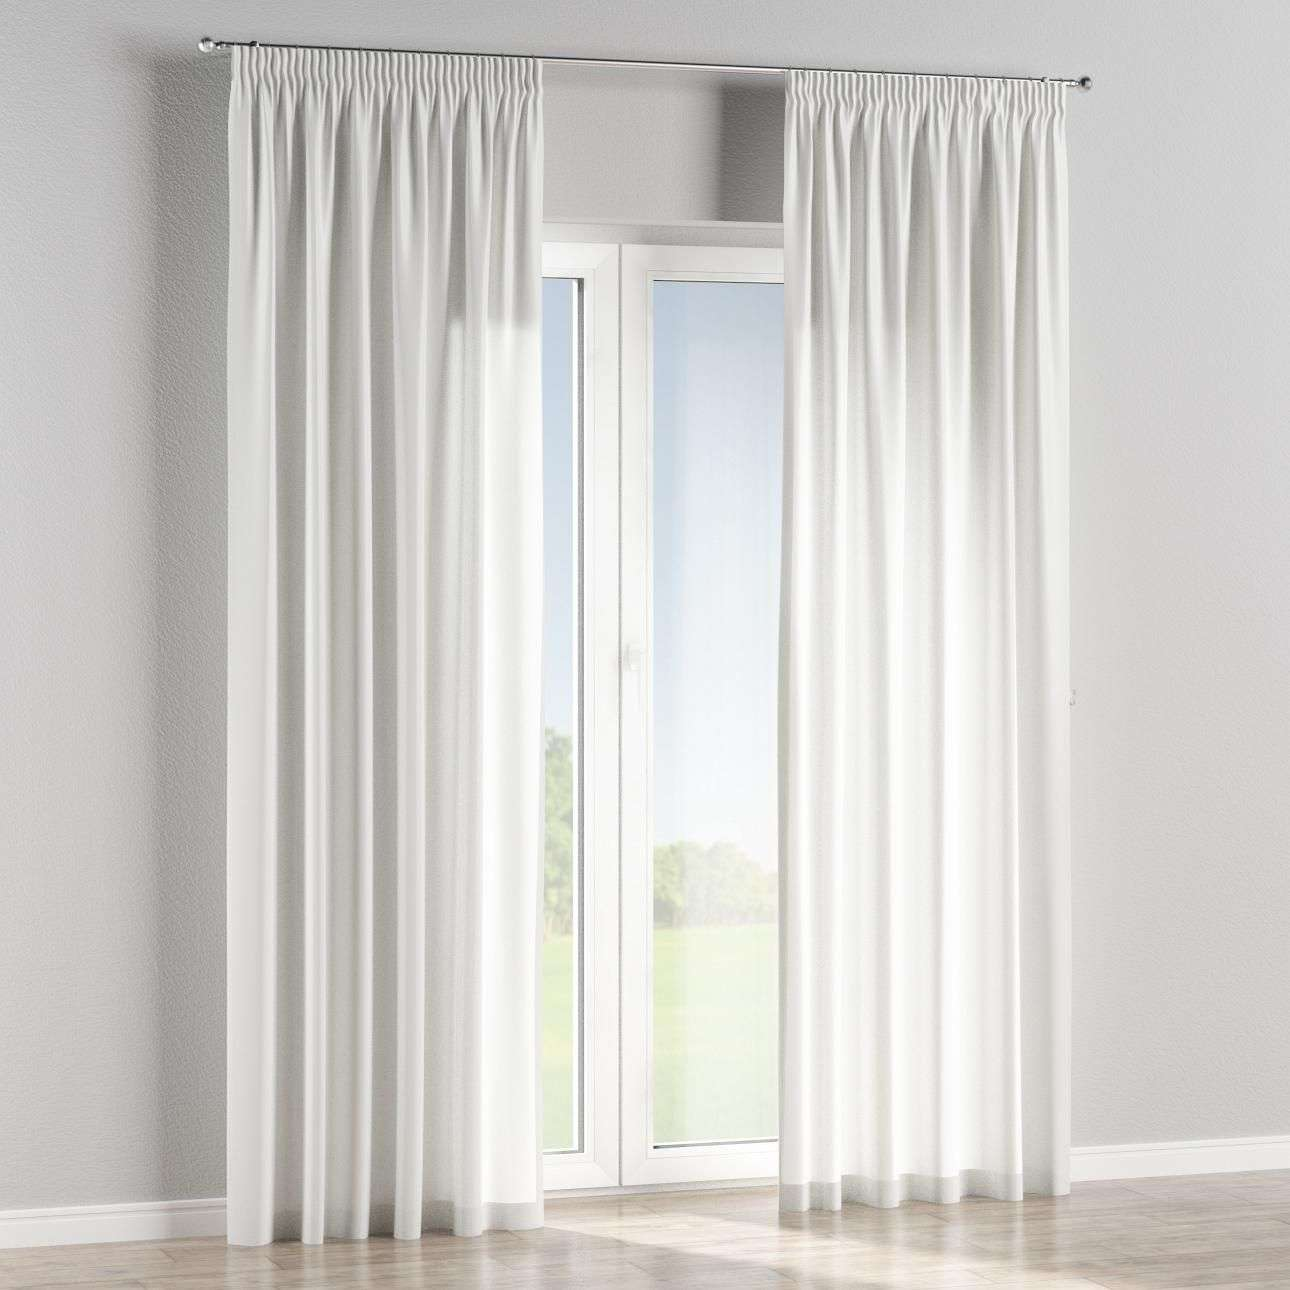 Pencil pleat lined curtains in collection Bristol, fabric: 125-69